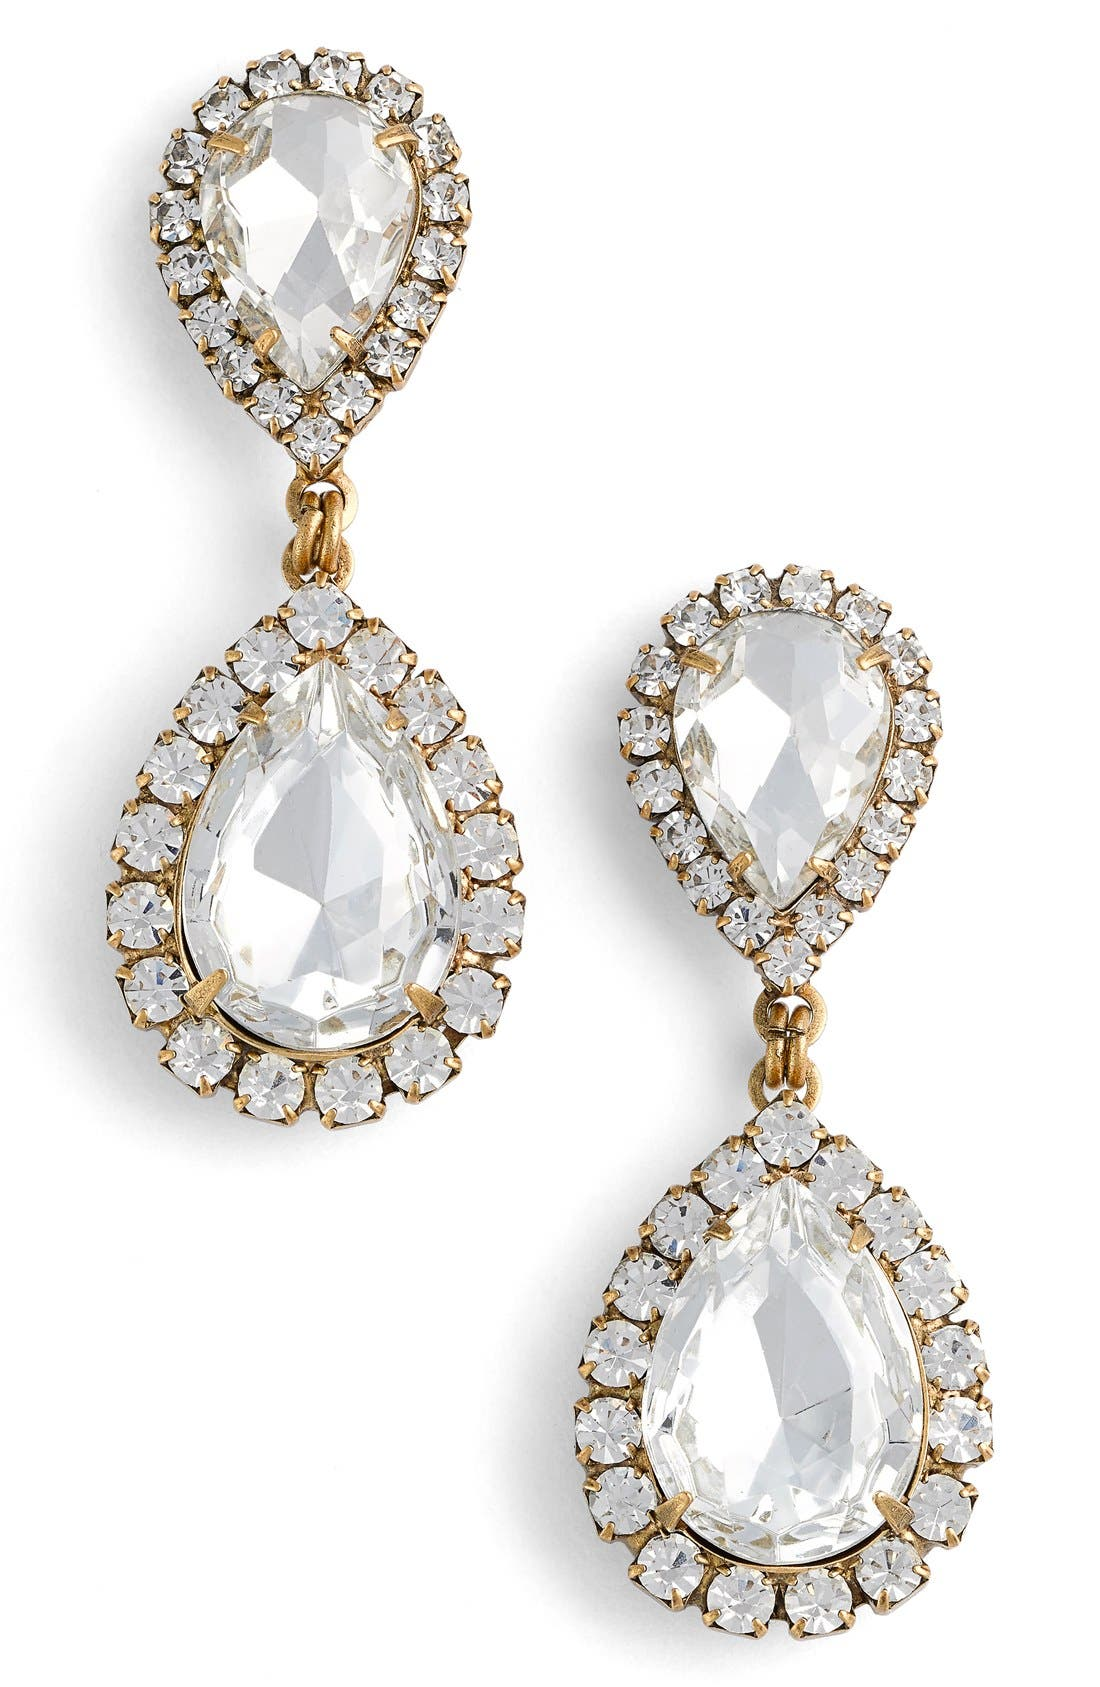 Main Image - Loren Hope Abba Crystal Drop Earrings